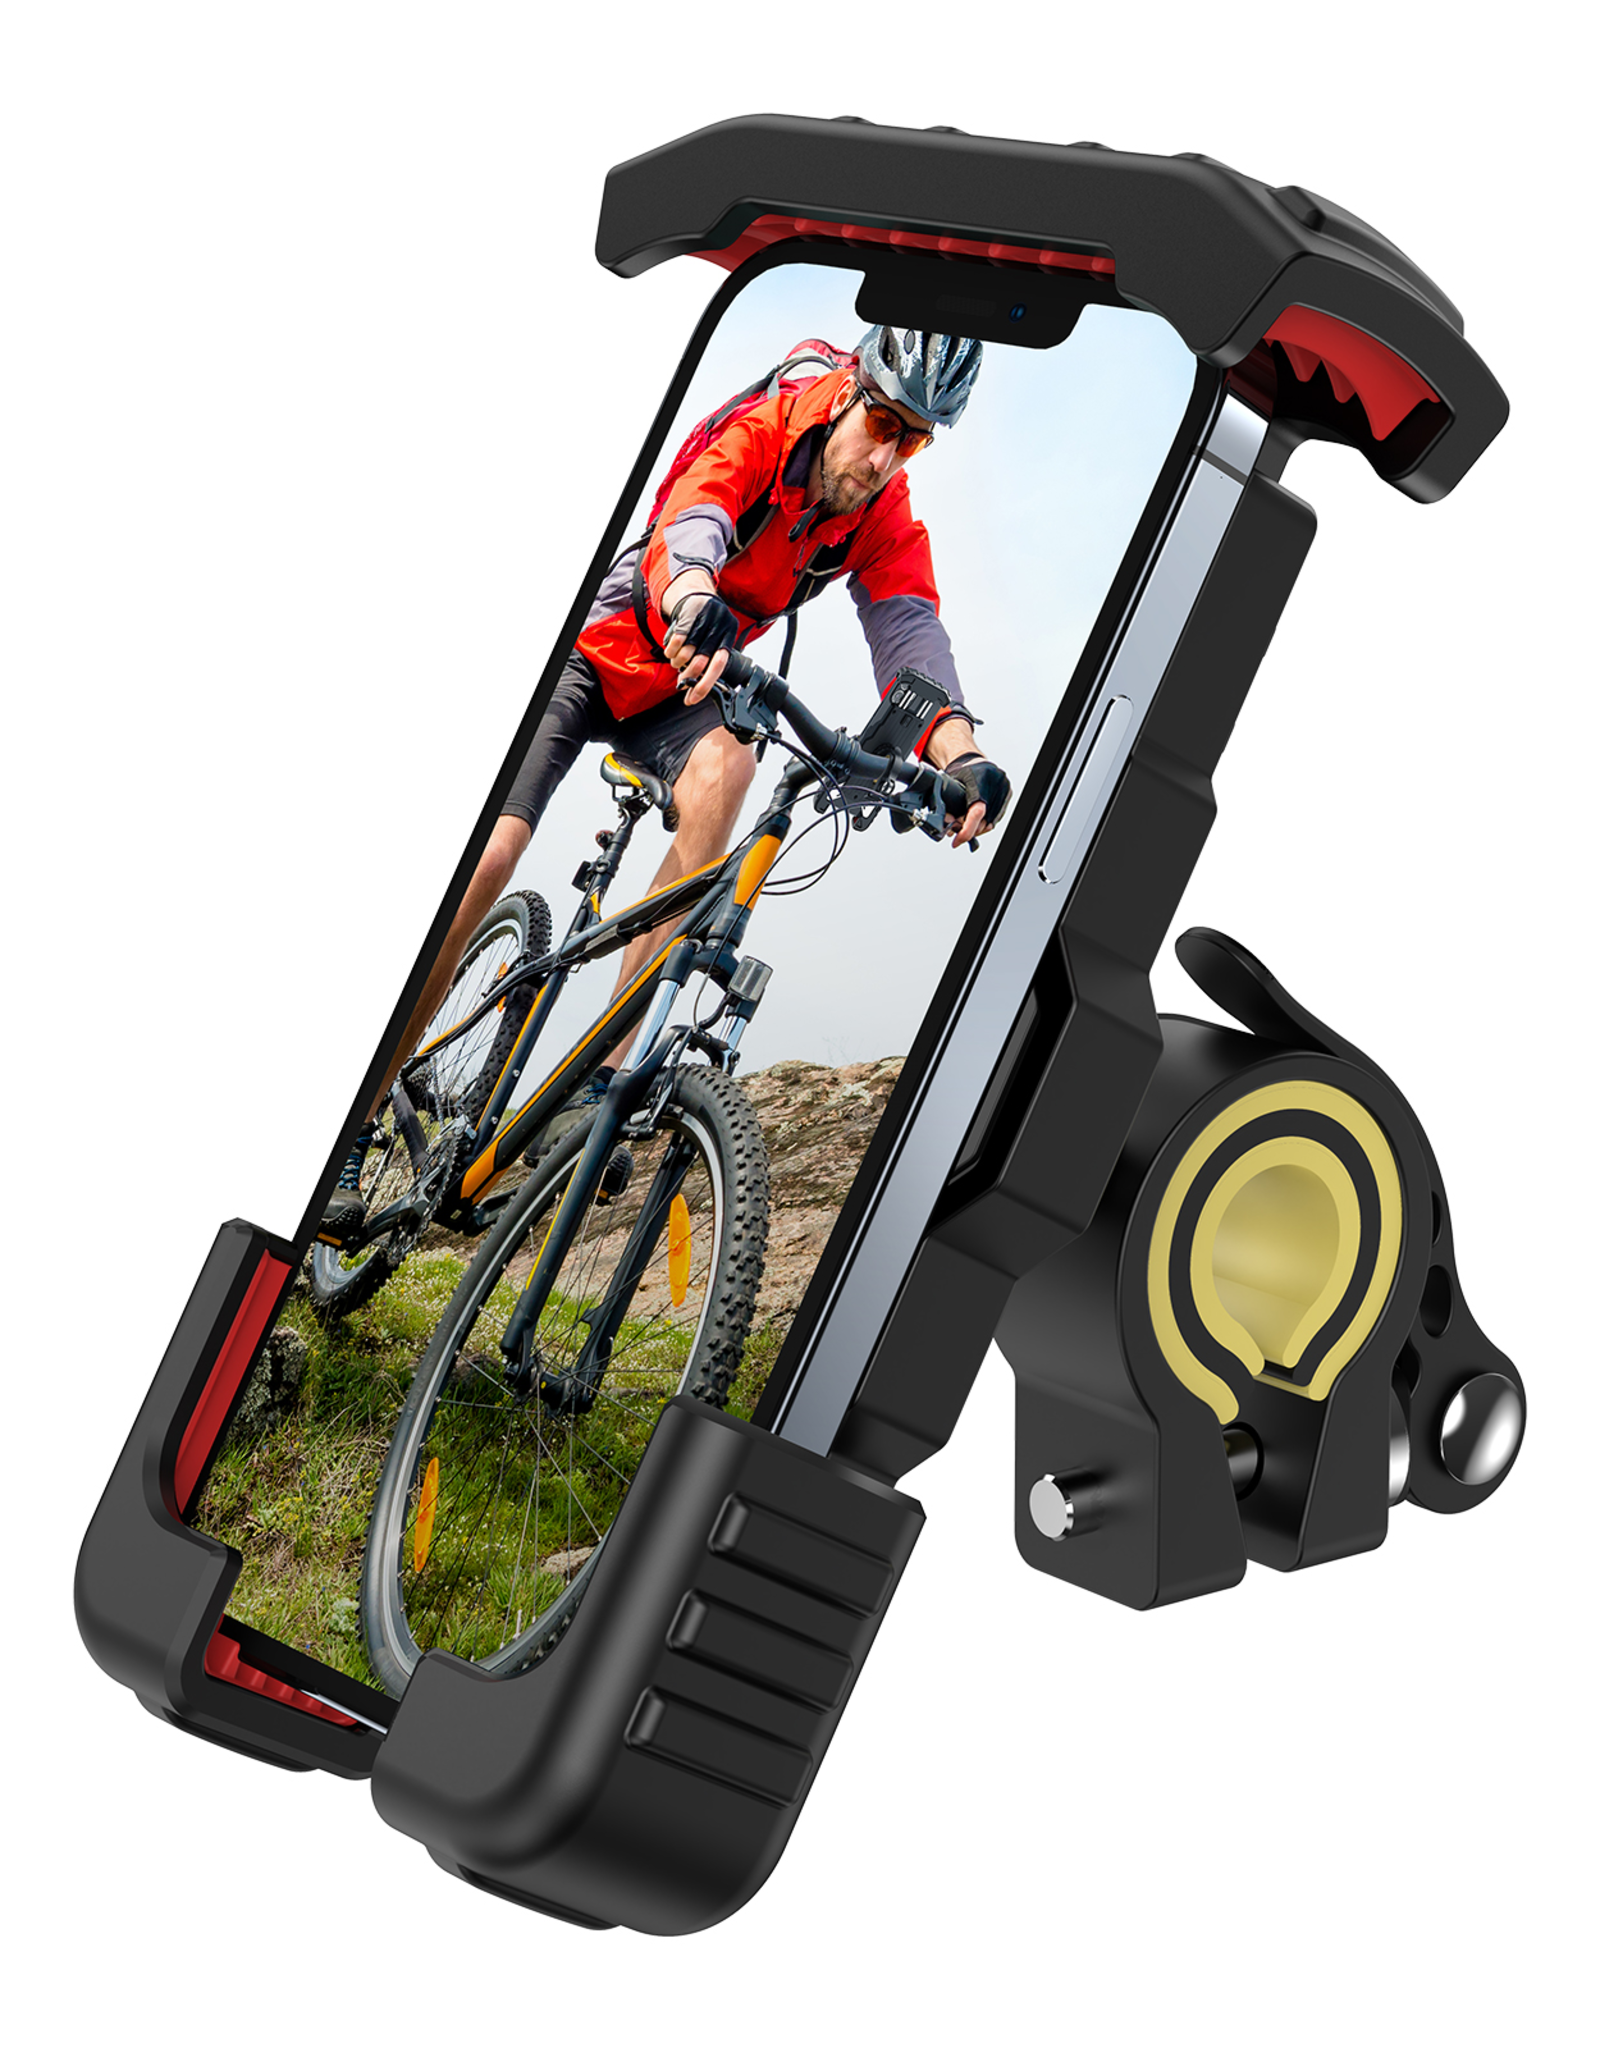 JOYROOM JR-ZS264 Wholesale Motorcycle Bike Bicycle Adjustable Mobile Phone Holder for Cell Phone GPS